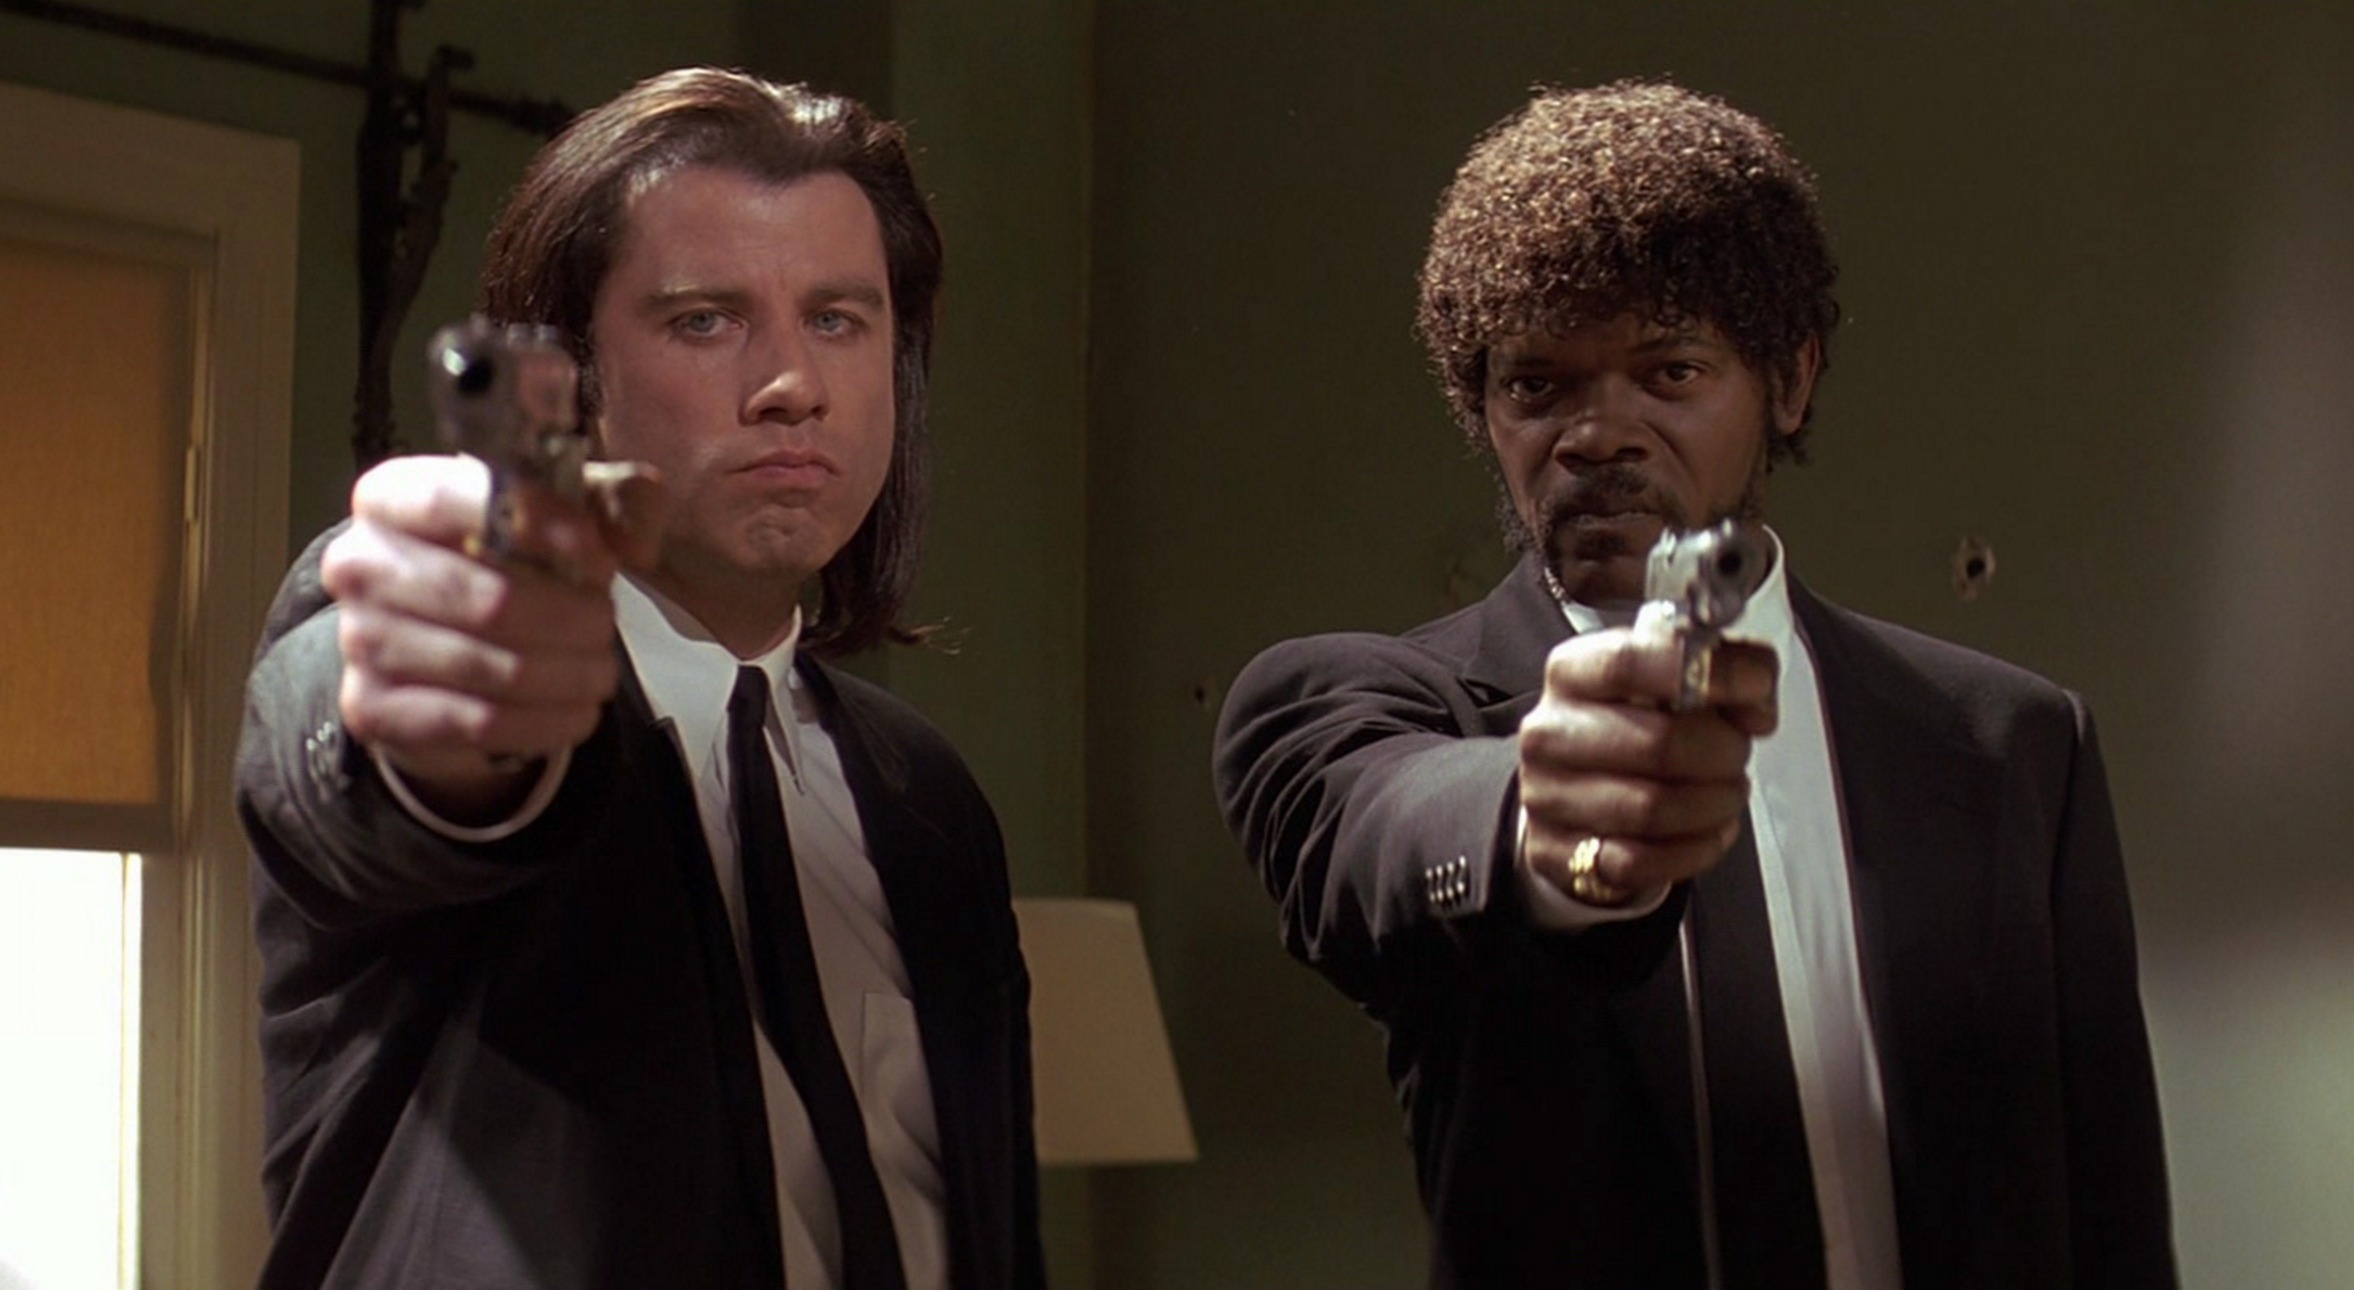 5506 - ¿Cuánto sabes de Pulp Fiction?